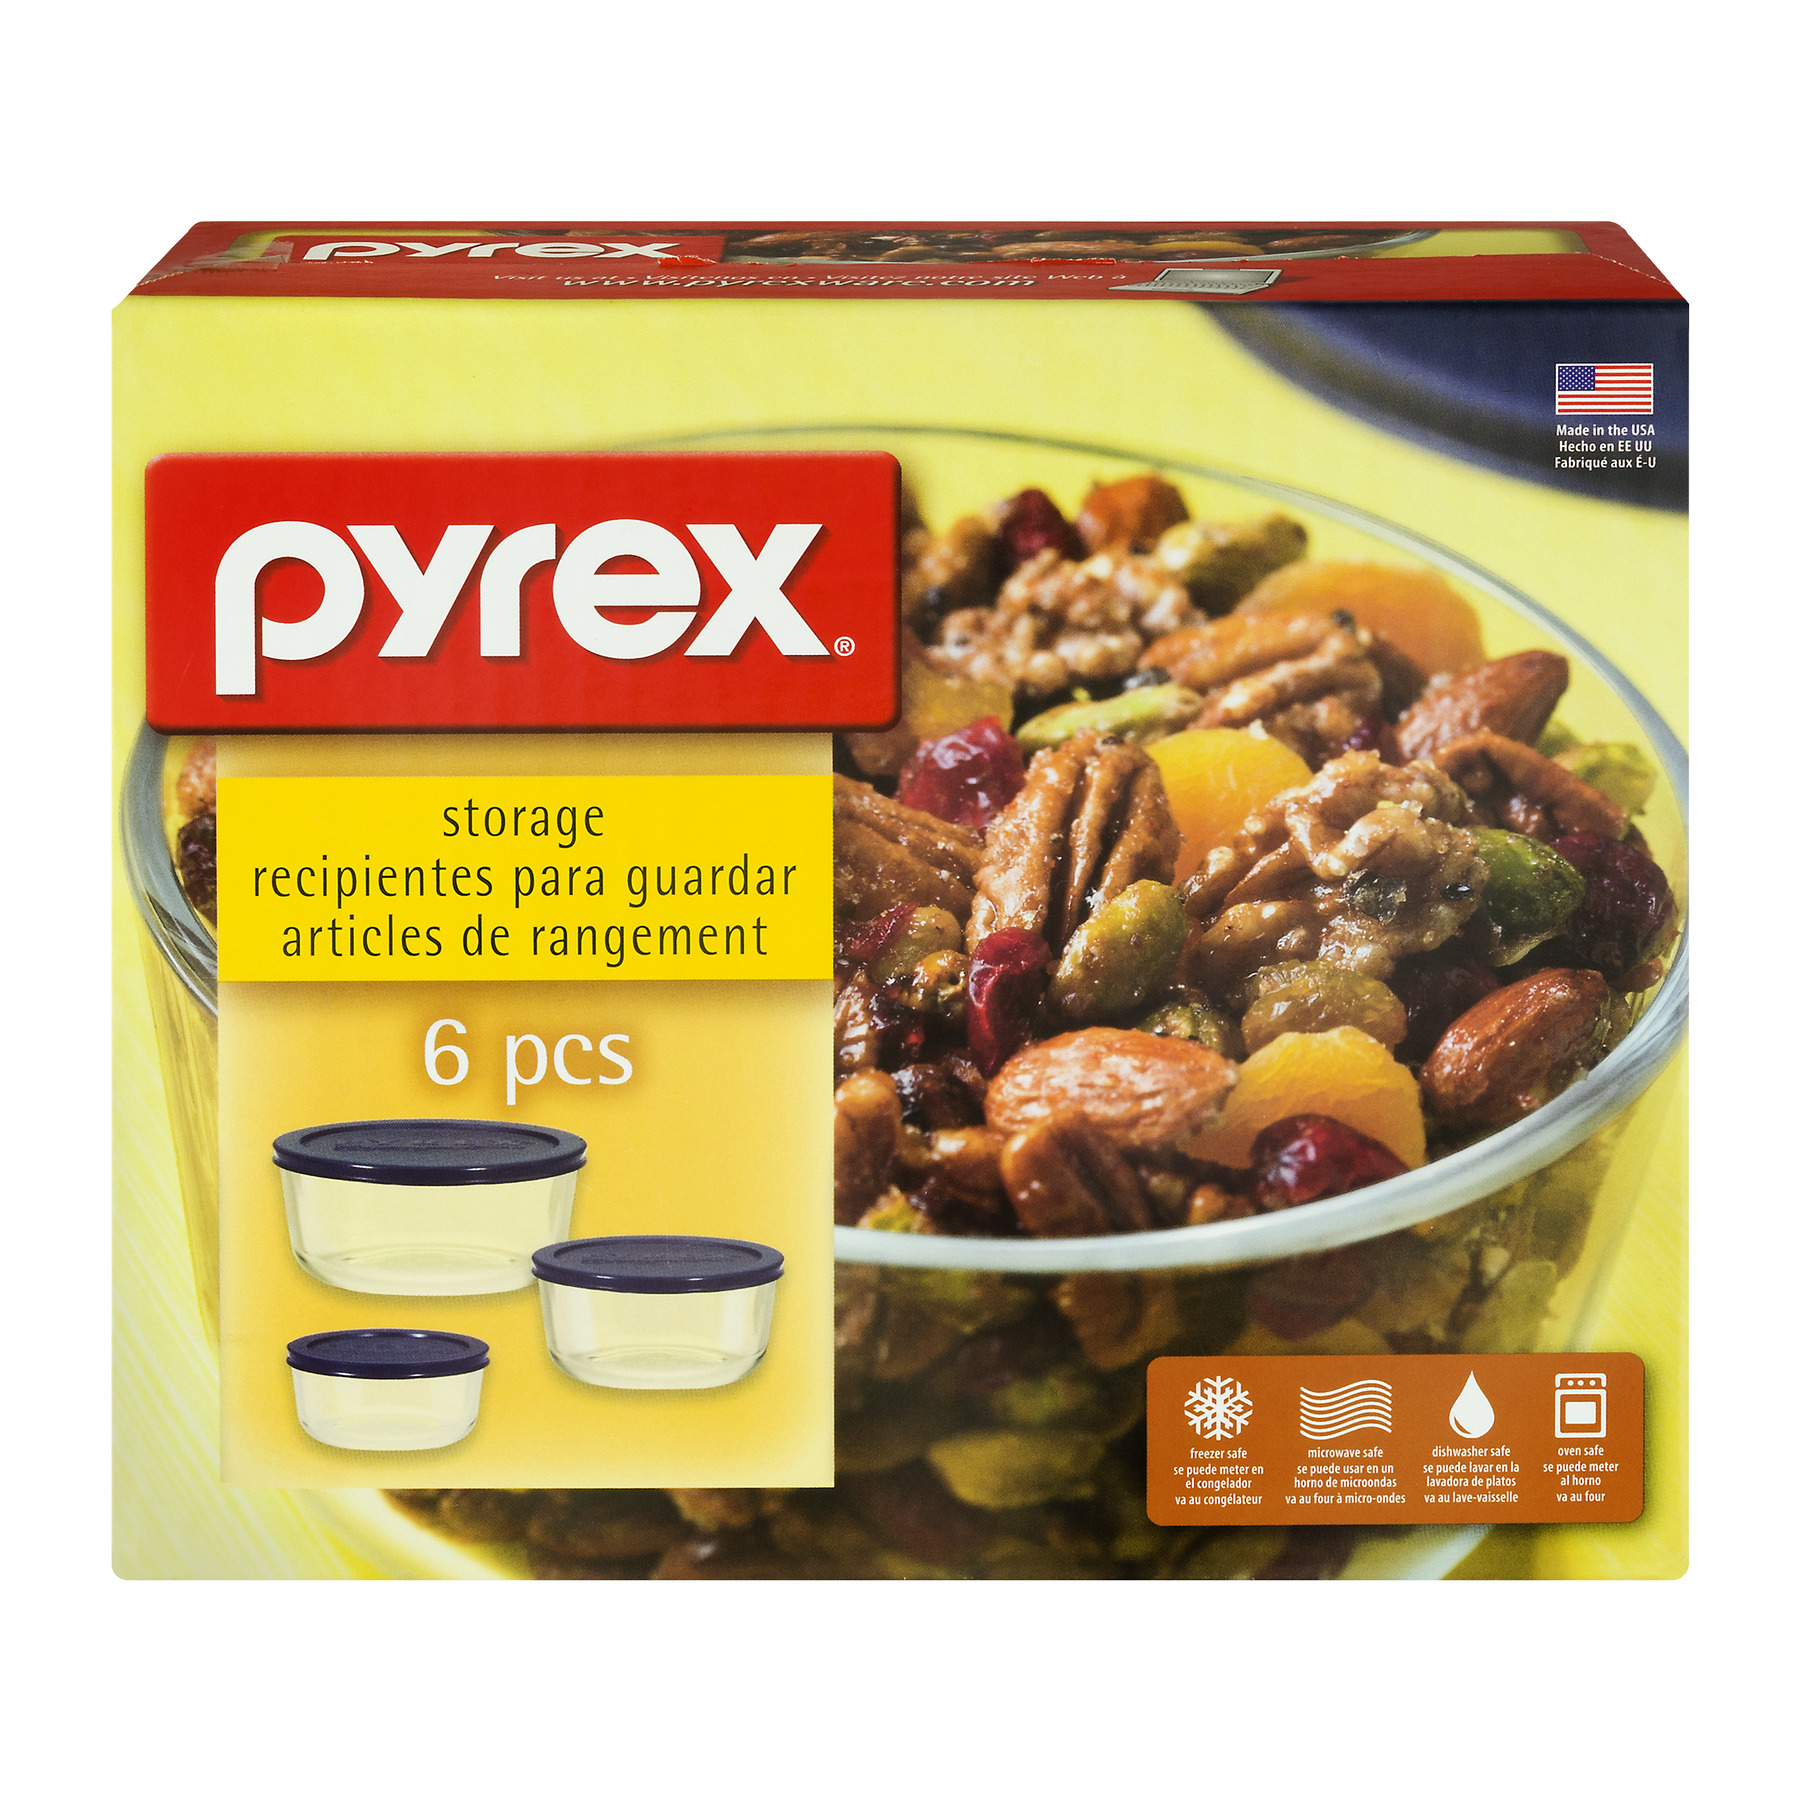 Pyrex Storage - 6 PC, 6.0 PIECE(S)